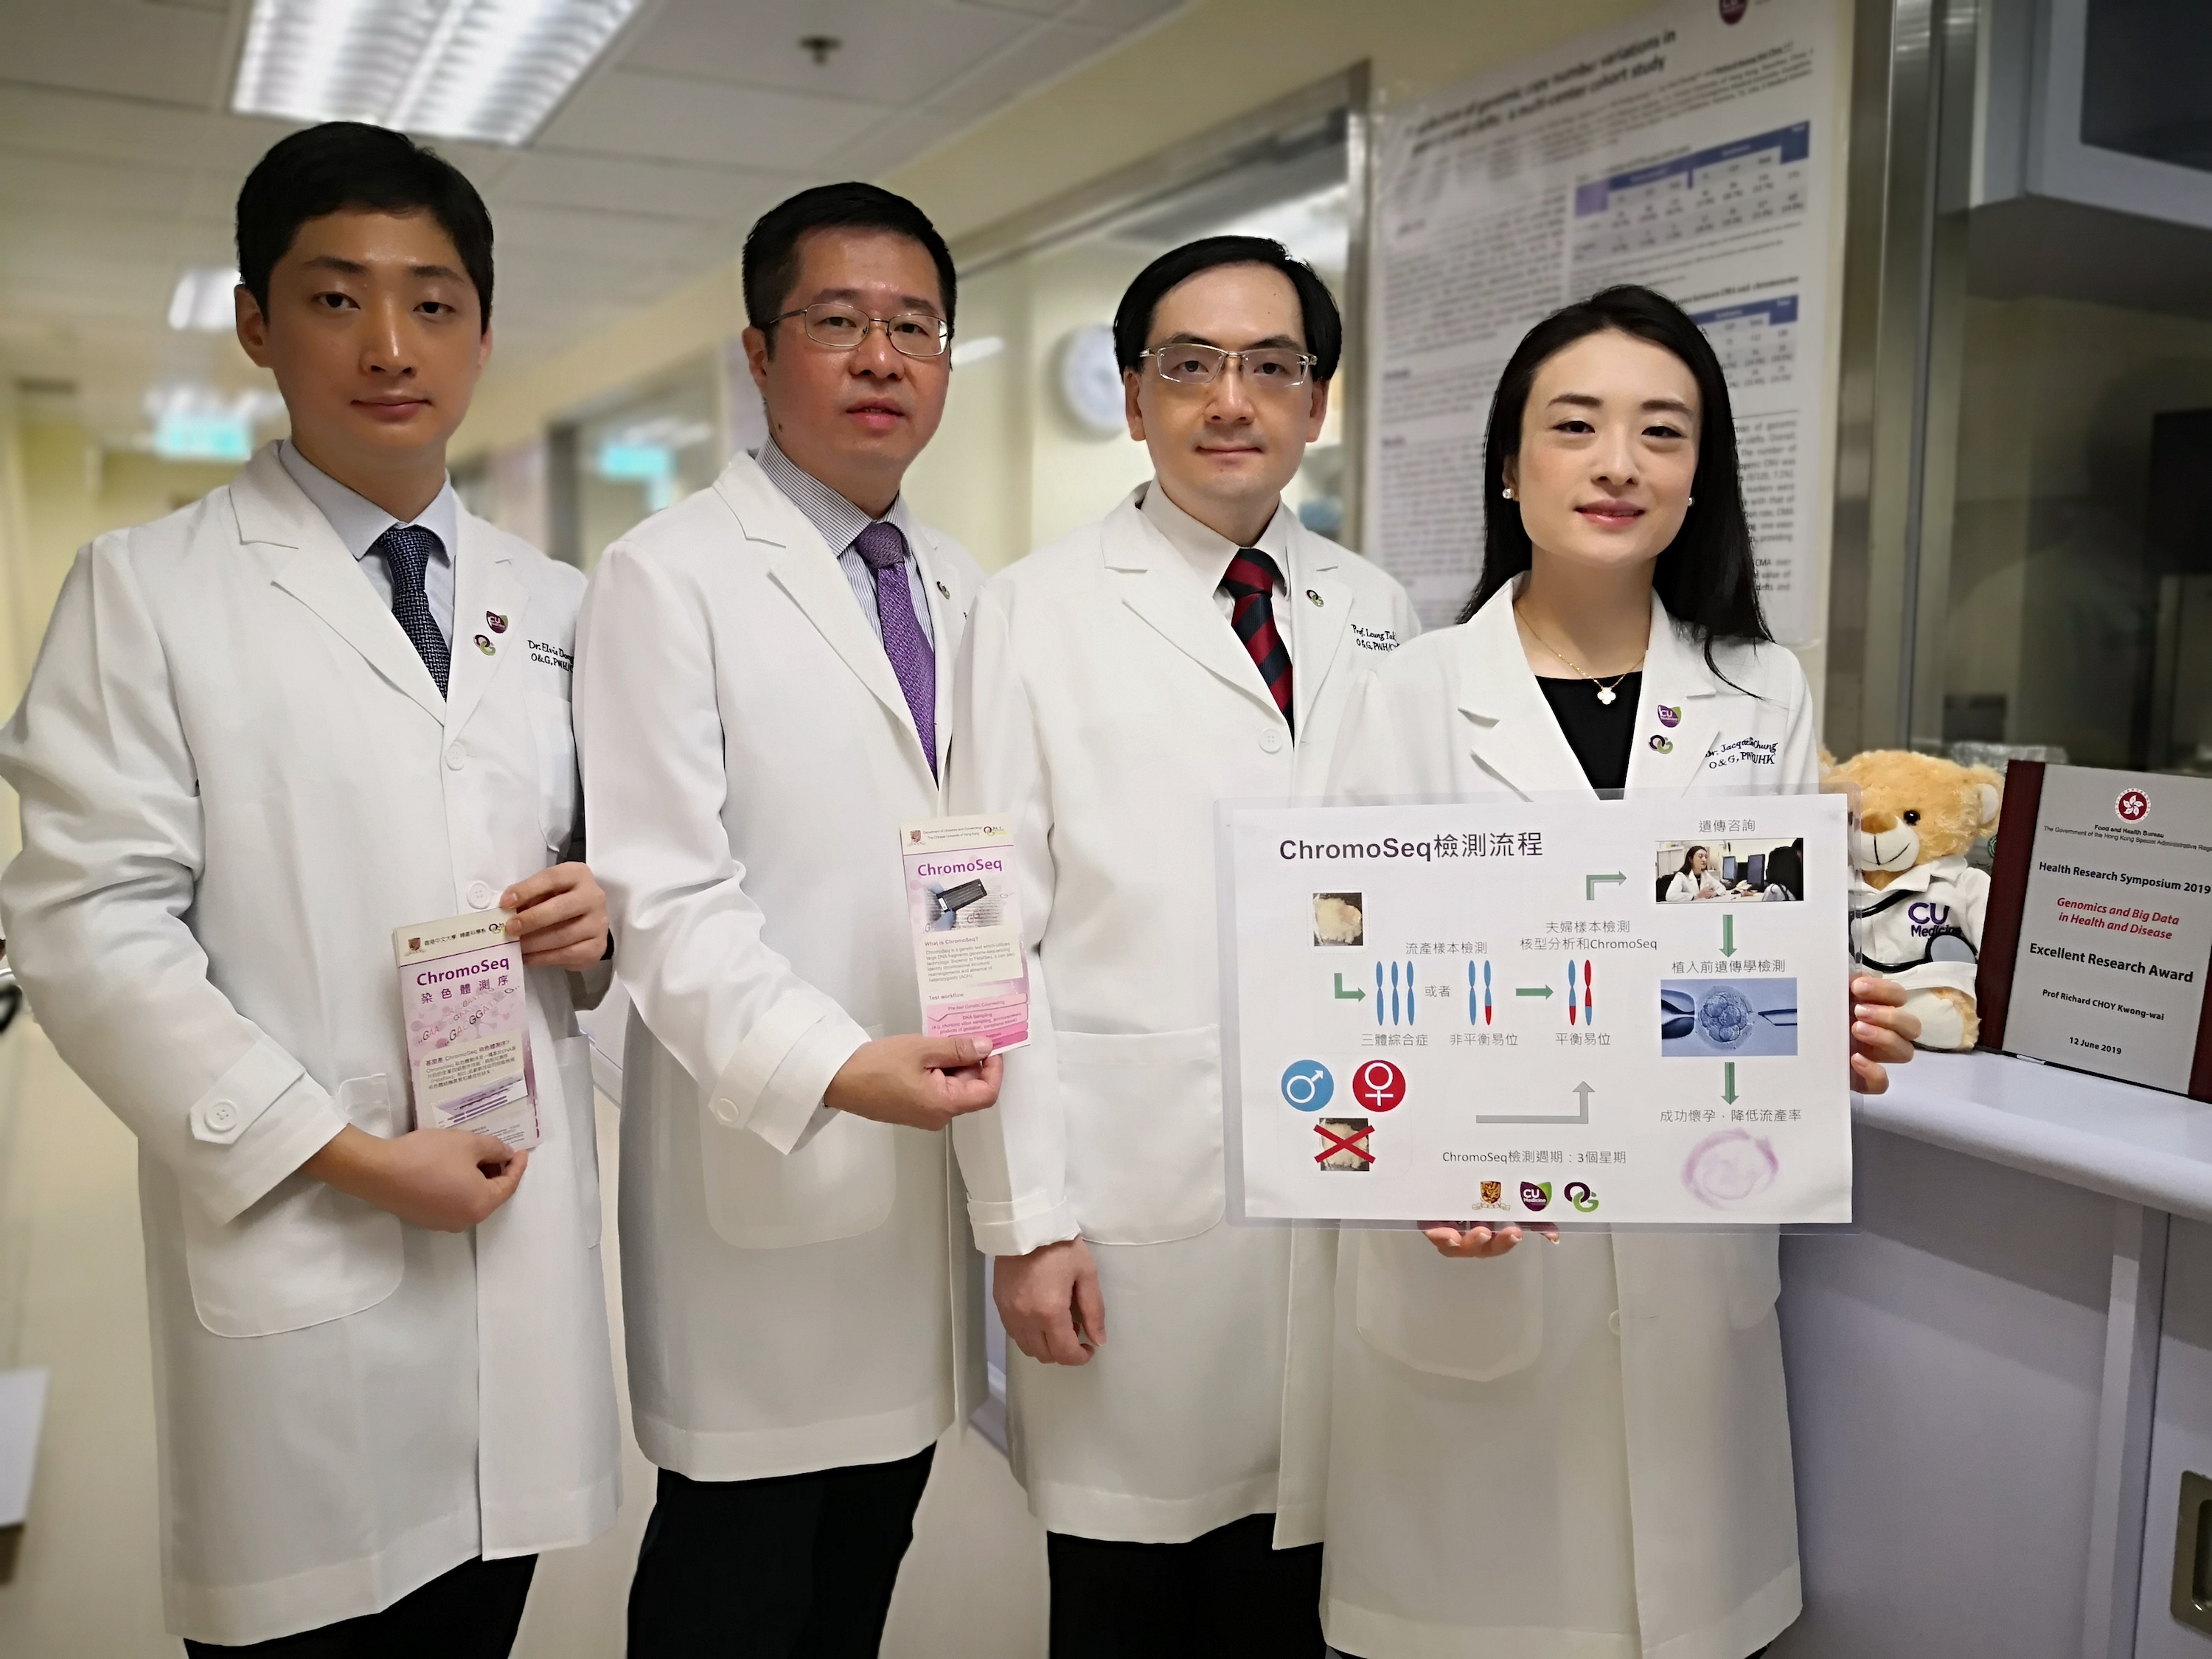 The O&G Department of CU Medicine is the first research team in the Asia Pacific region to develop genome sequencing based tests for genetic prenatal diagnosis. The team successfully developed a new genome sequencing test called ChromoSeq to identify the genetic defects for married couples, who suffered from recurrent miscarriages.  (From left) Dr. Elvis DONG, Research Assistant Professor; Professor Richard Kwong Wai CHOY, Professor; Professor Tak Yeung LEUNG, Chairman of the Department; Dr. Jacqueline Pui Wah CHUNG, Clinical Associate Professor from the Department of O&G, CU Medicine.